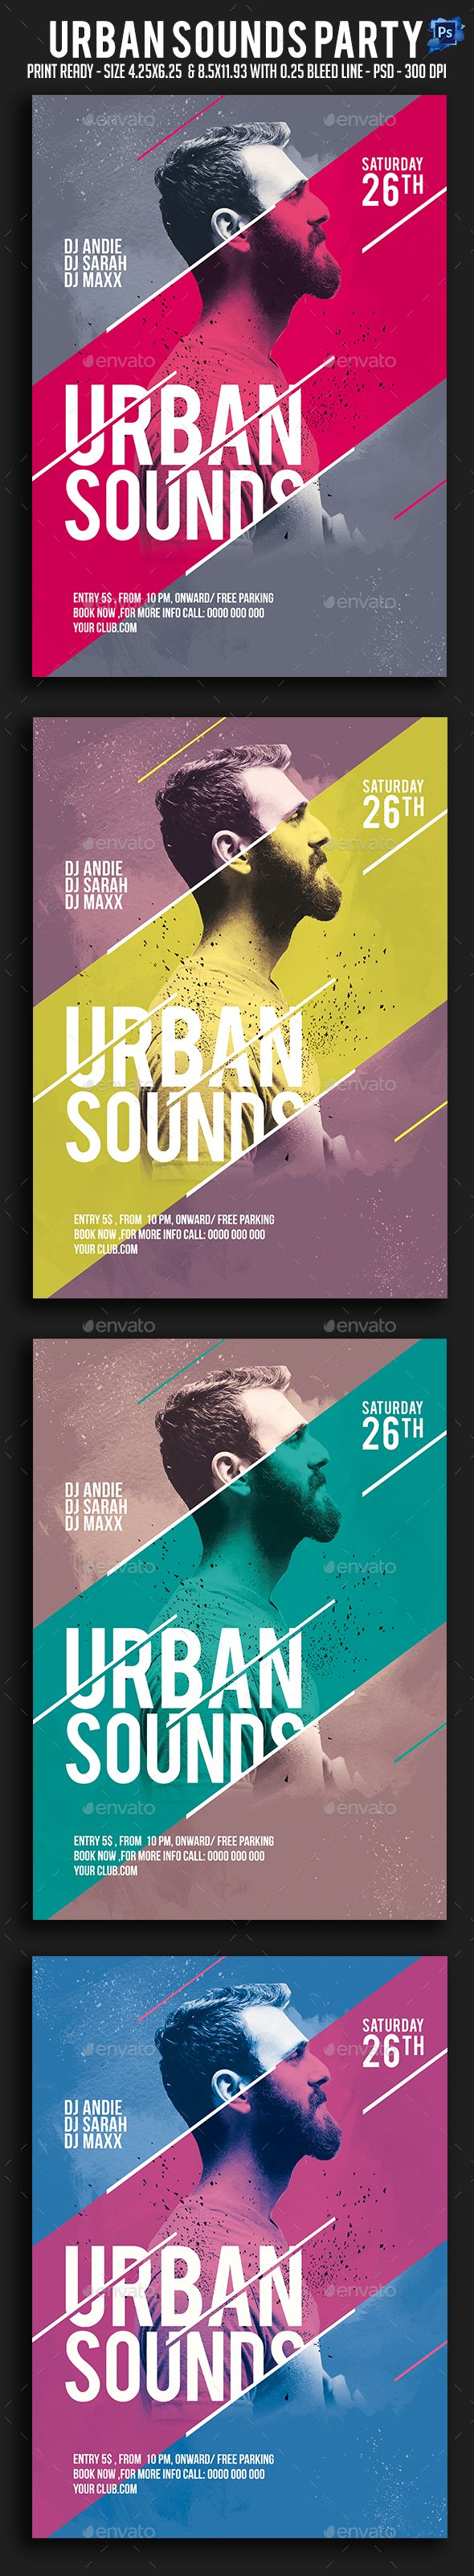 Poster design template free - Urban Sounds Party Flyer